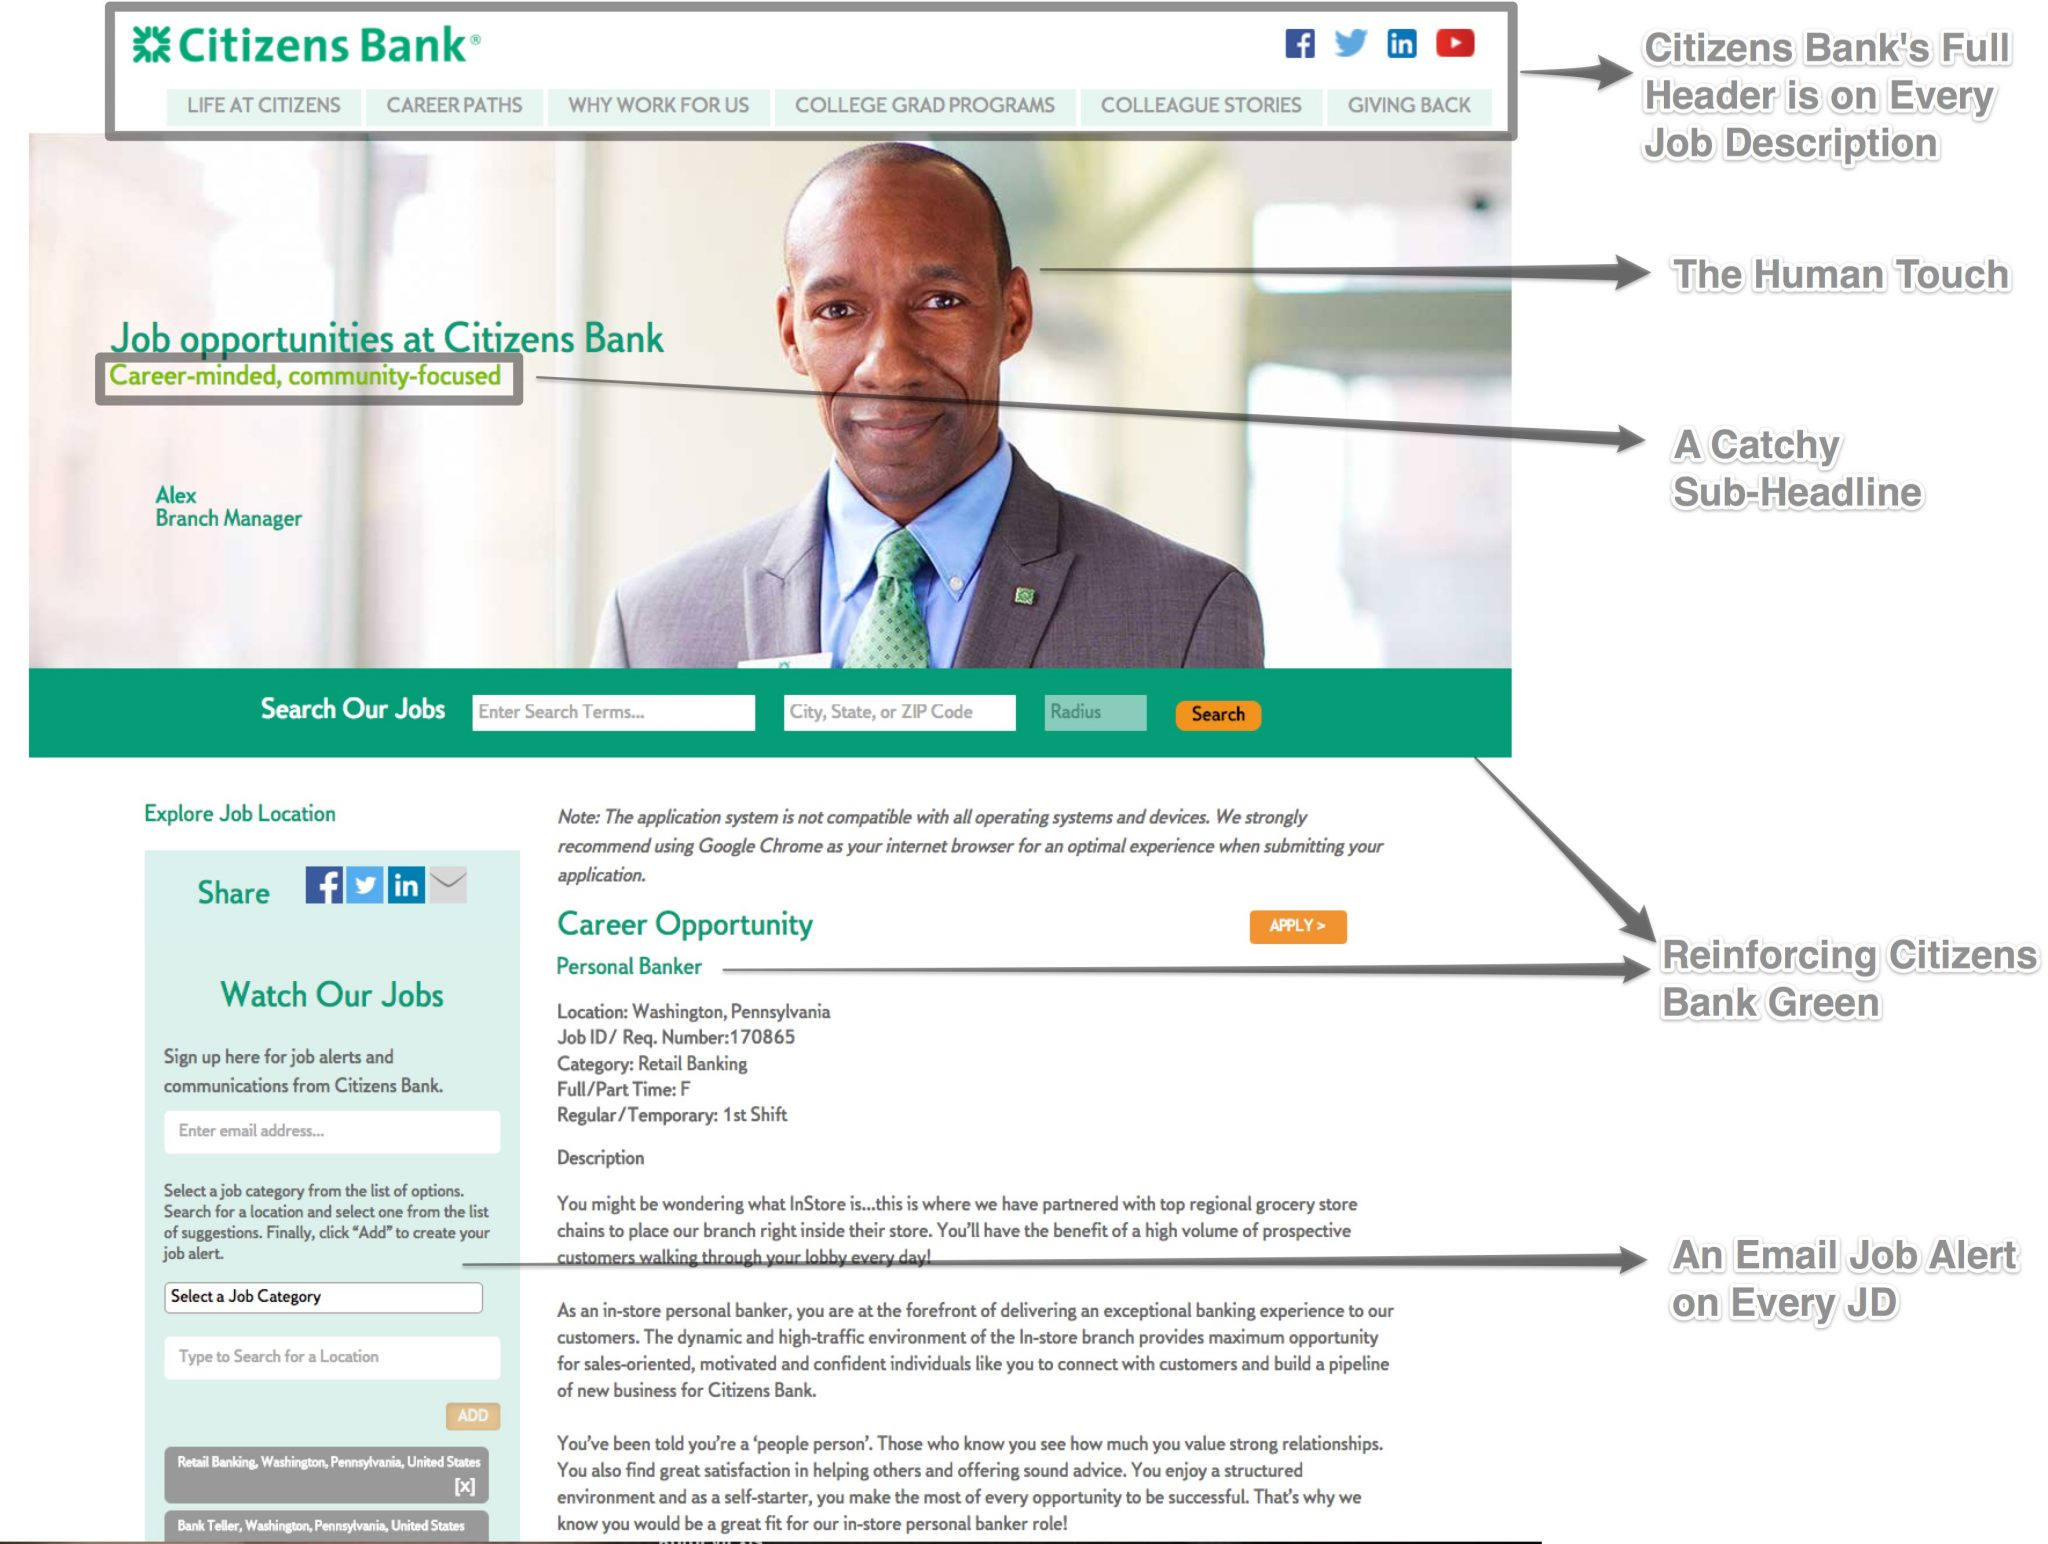 Citizens Bank Branded Job Description 1 | Ongig Blog